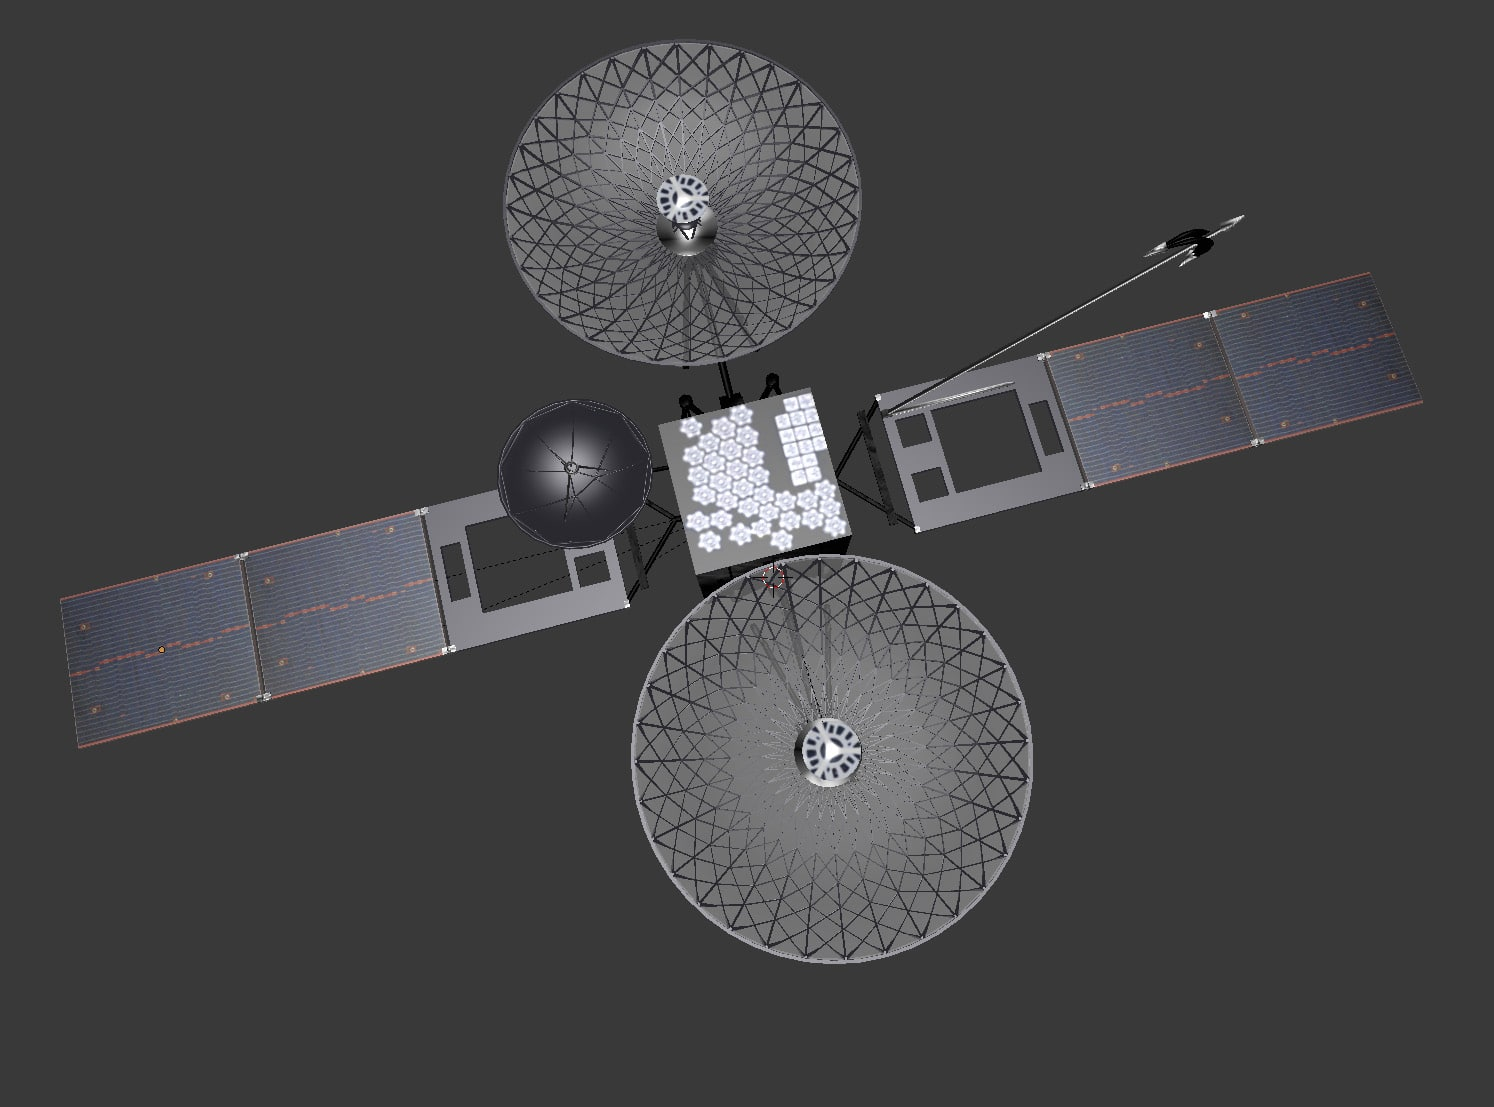 TDRS, Tracking and Data Relay Satellite